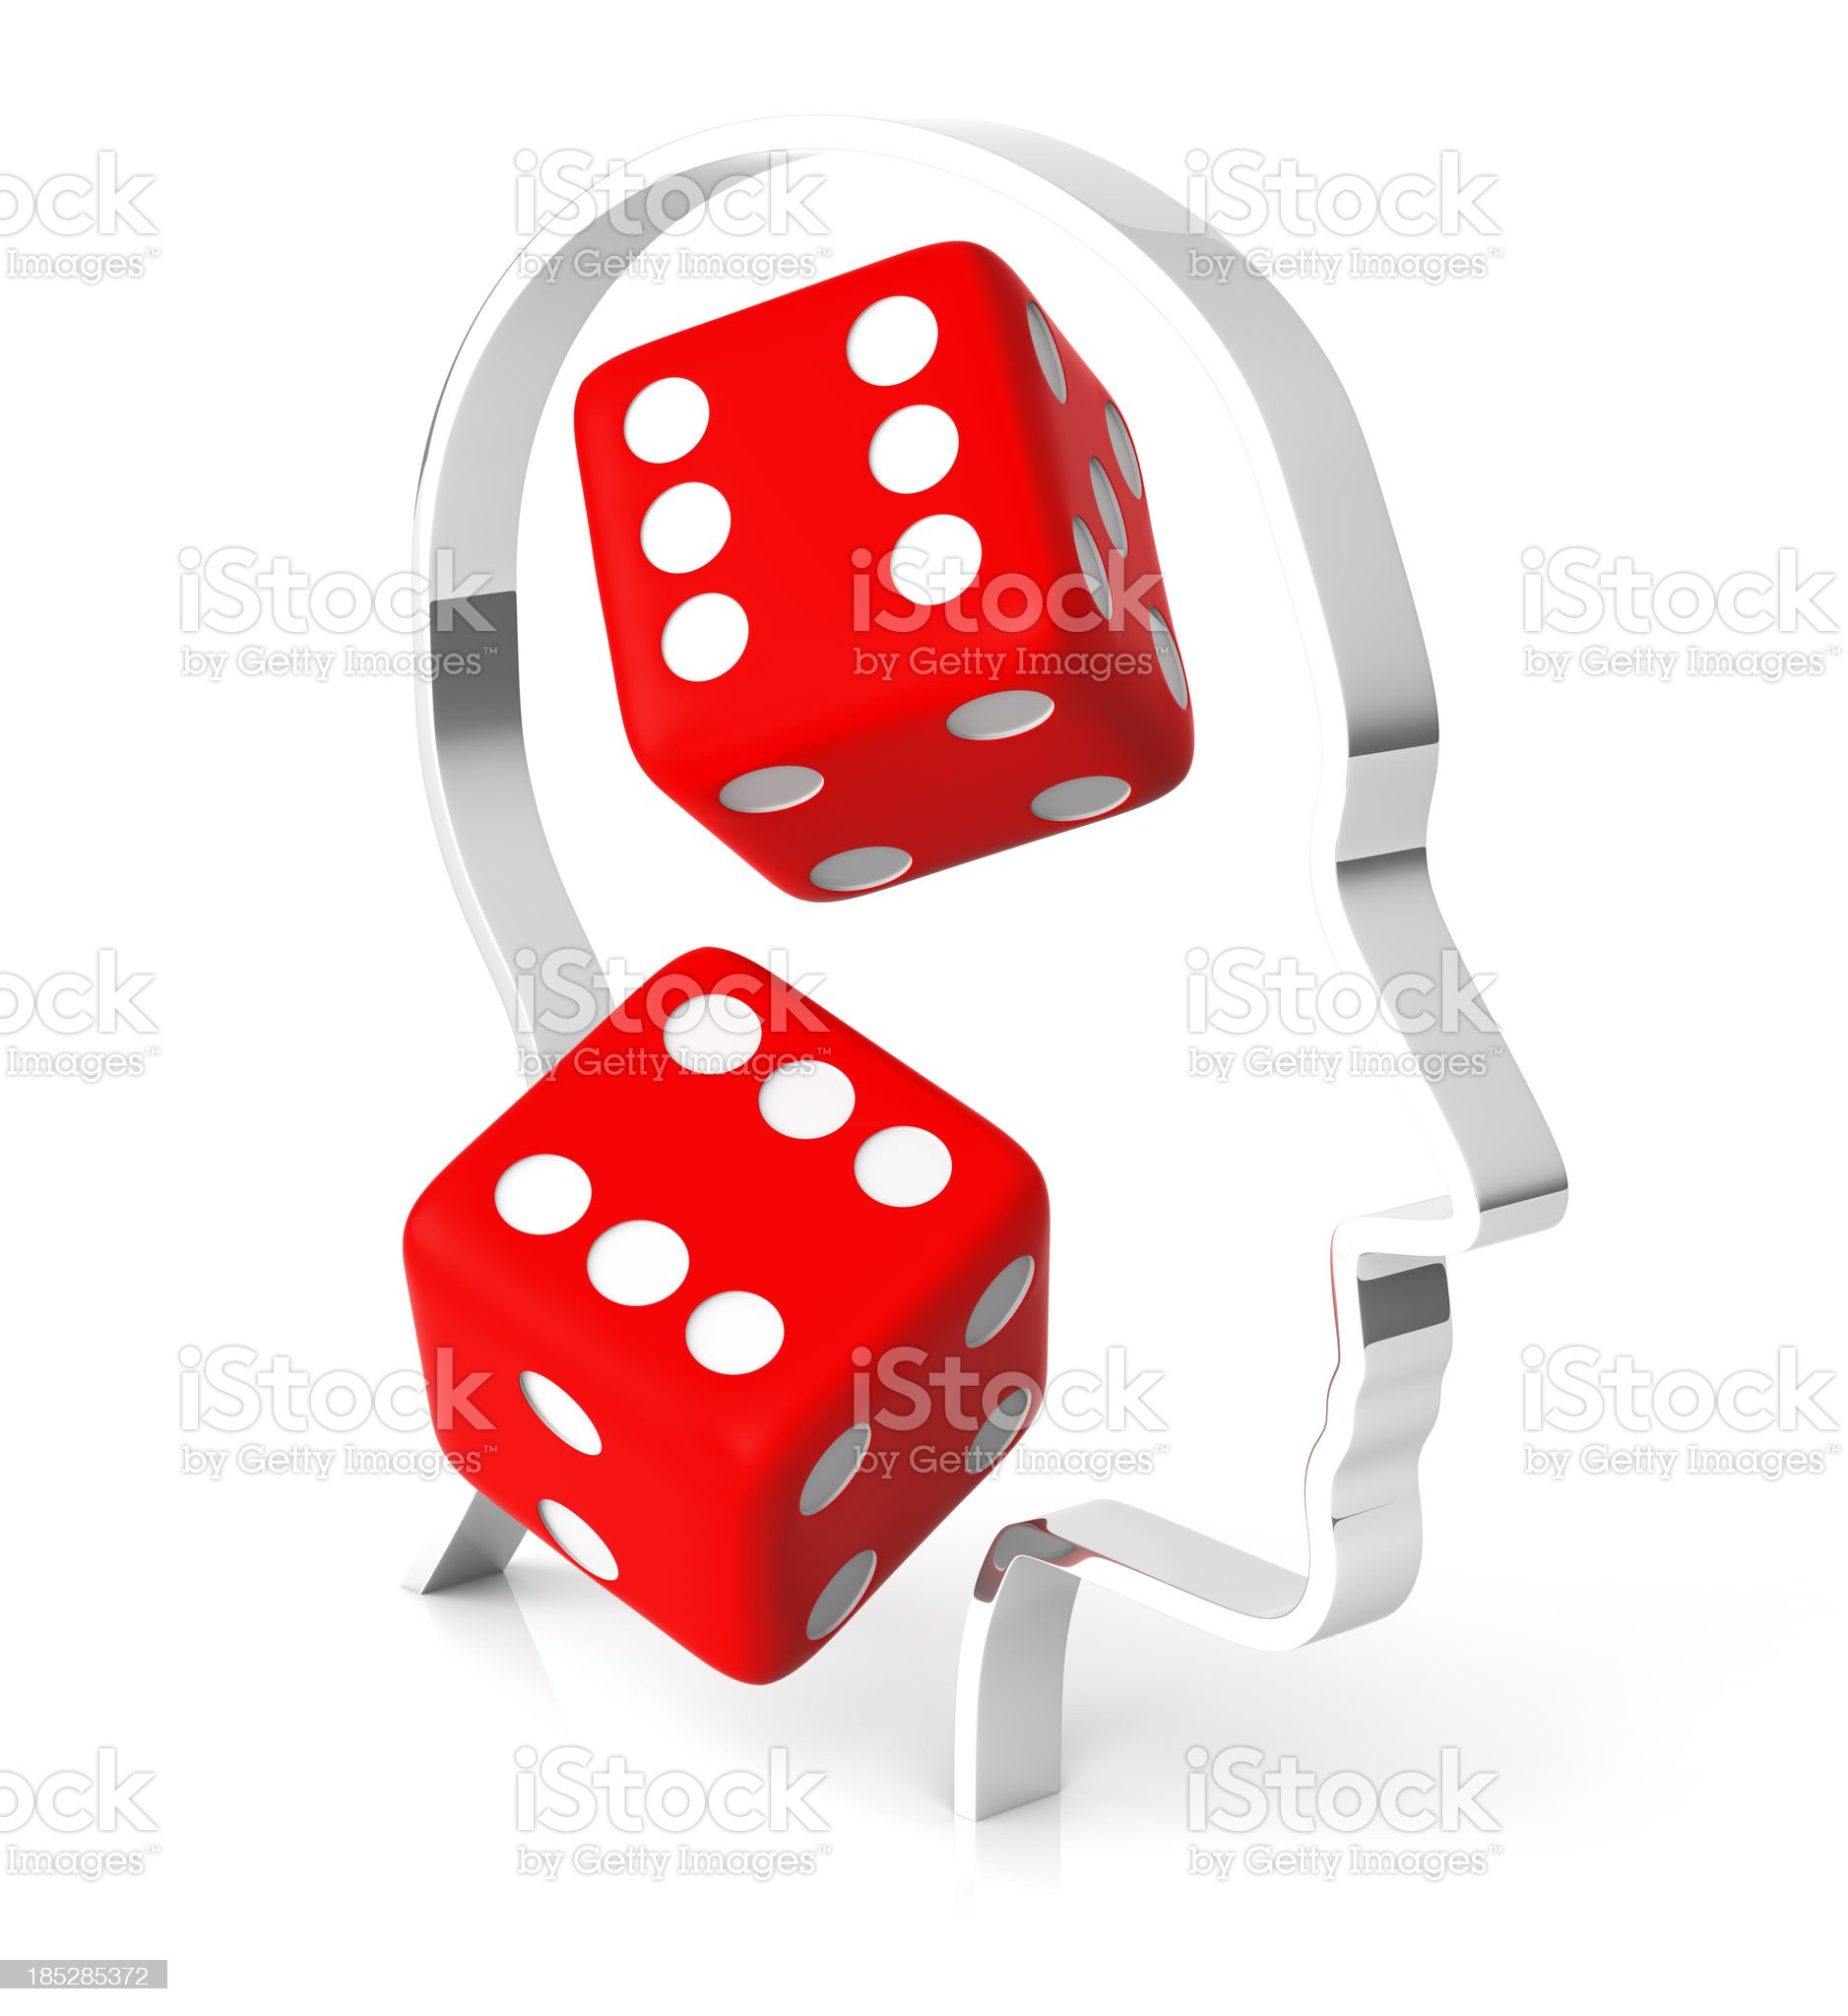 Lucky Dice inside Human Brain royalty-free stock photo